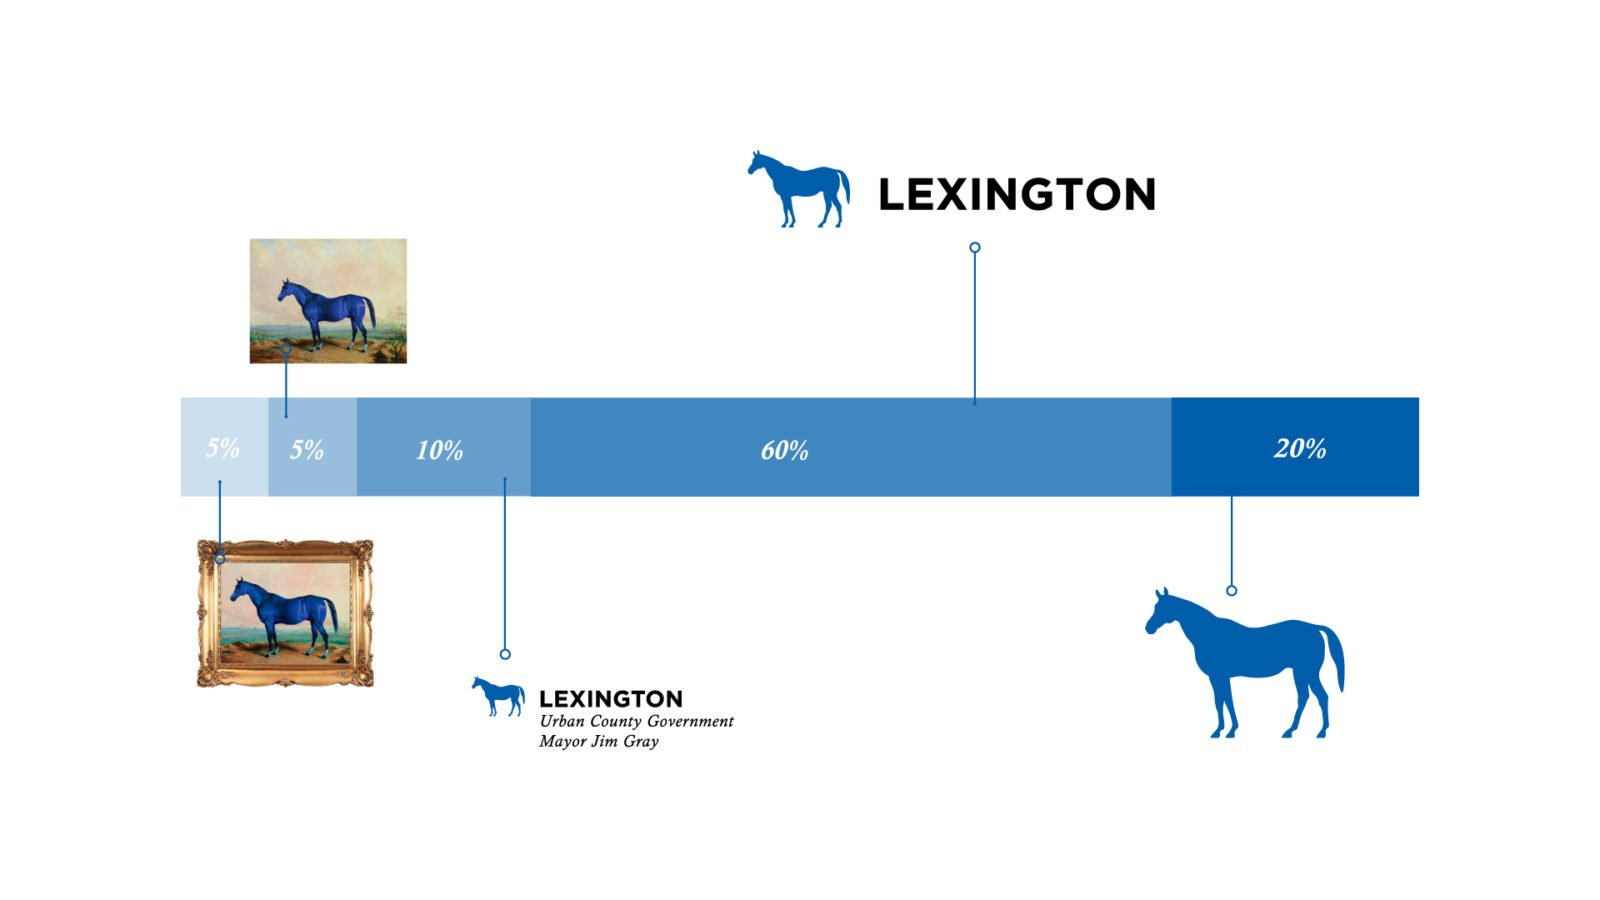 An Identity Guidelines for The City of Lexington By Bullhorn Creative